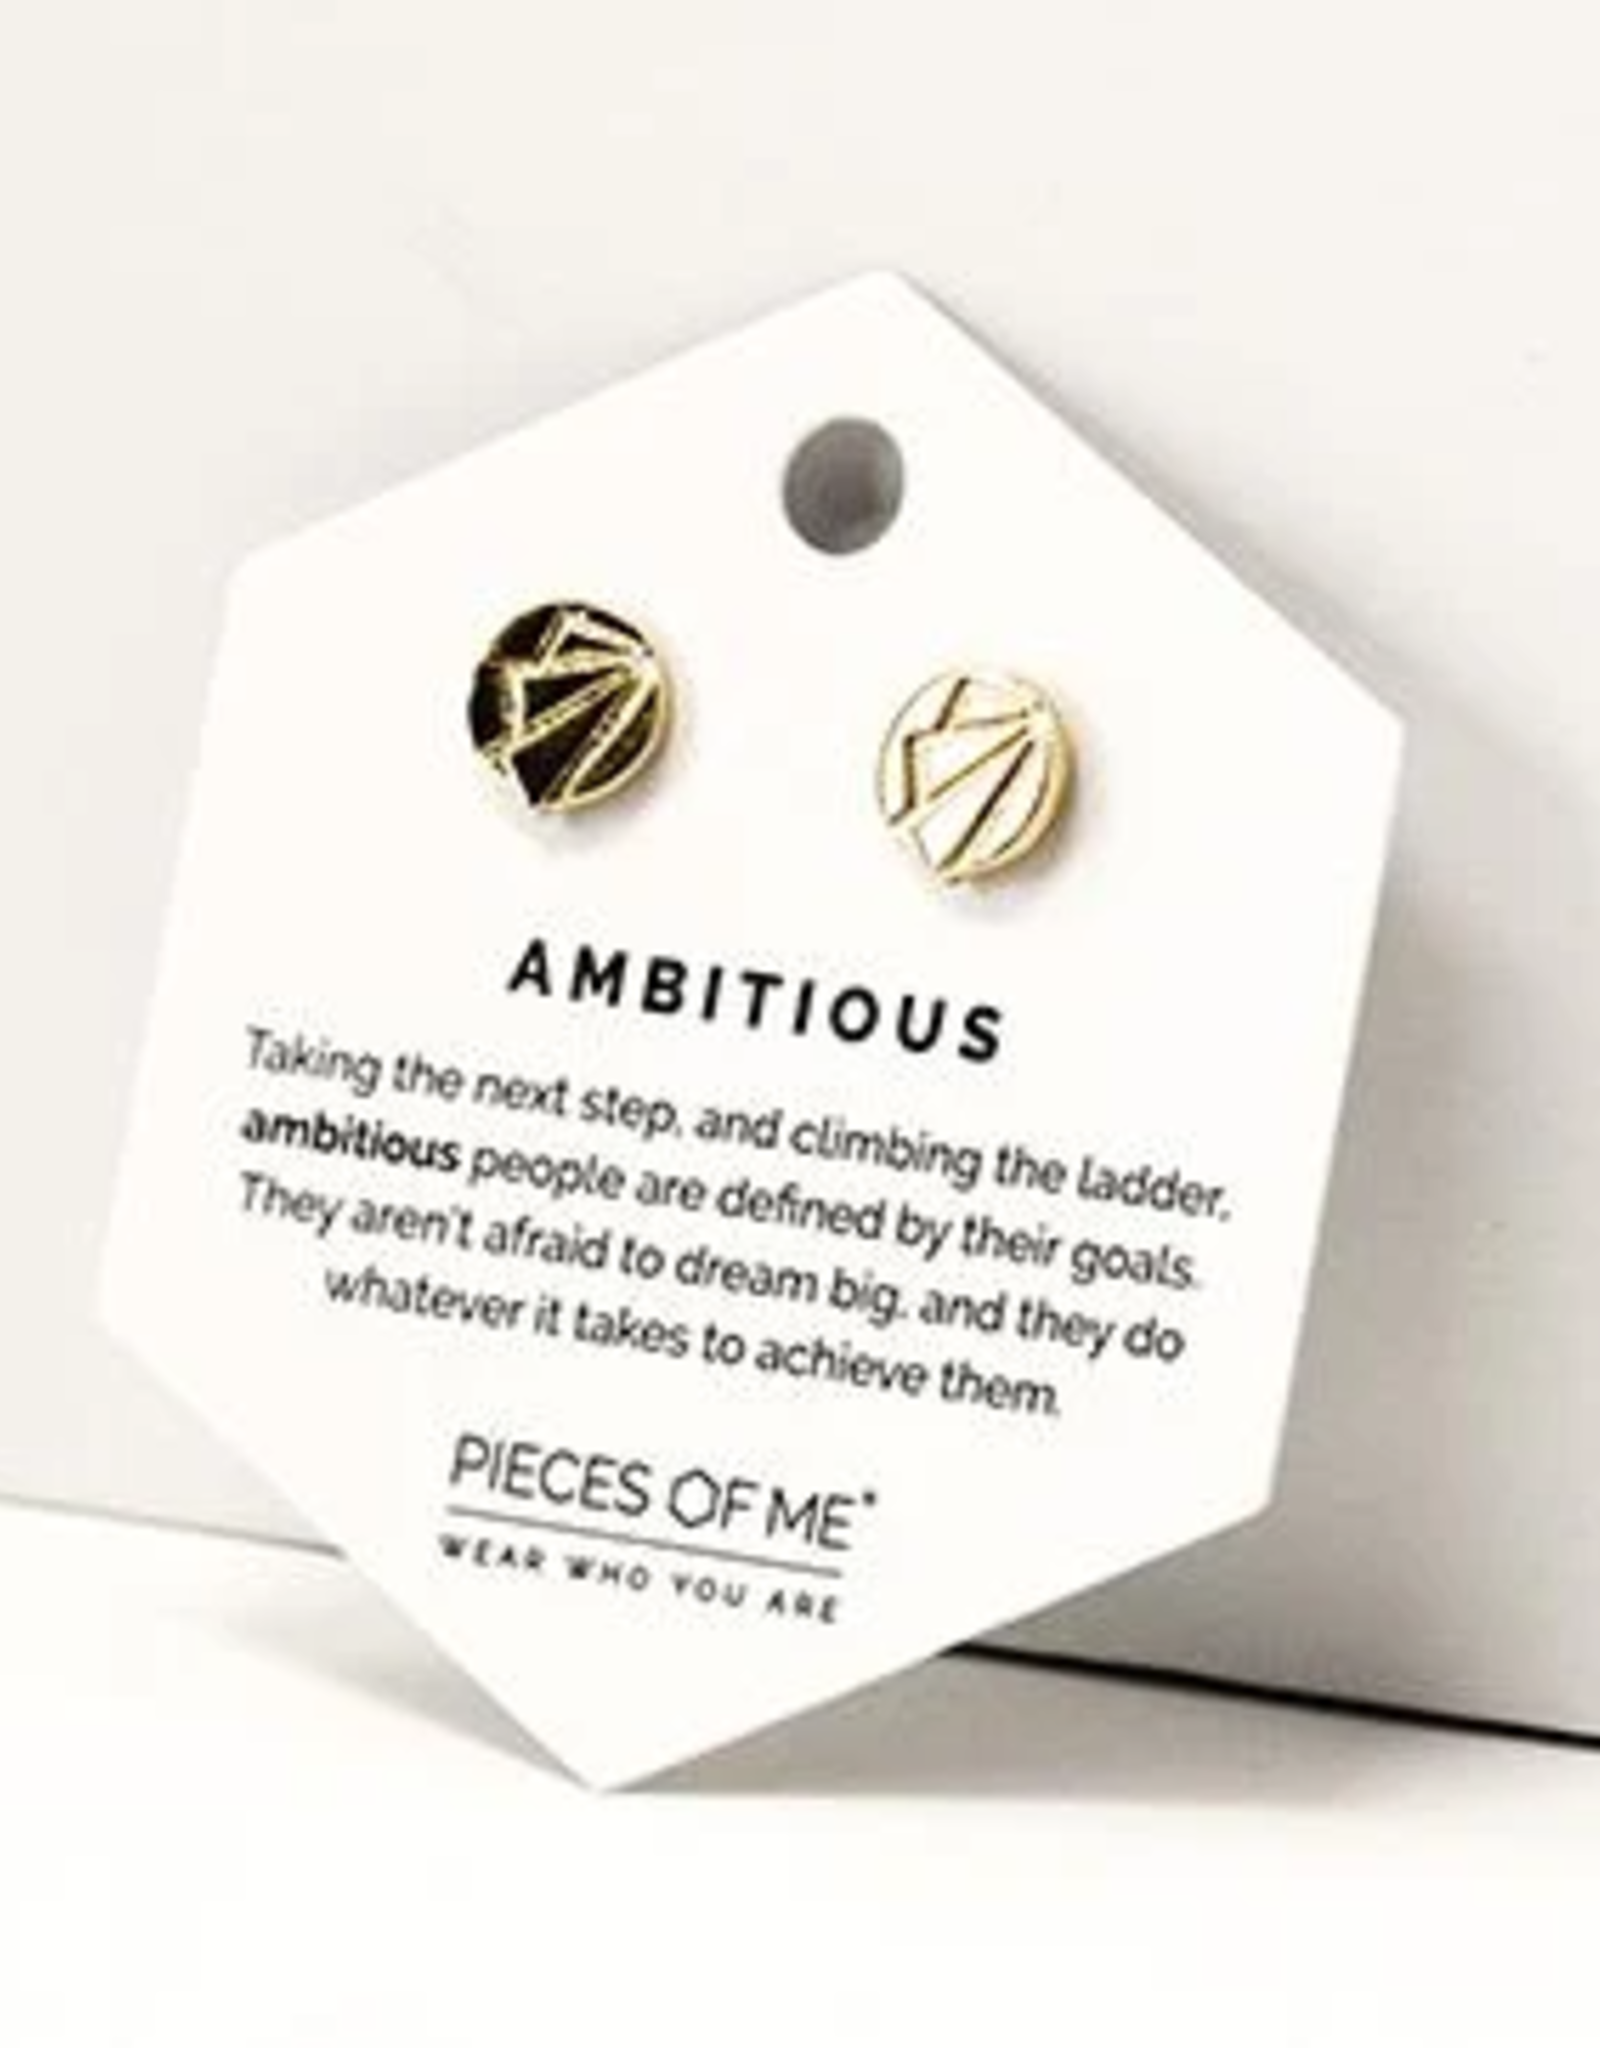 Pieces of Me Ambitious Earrings - Gold